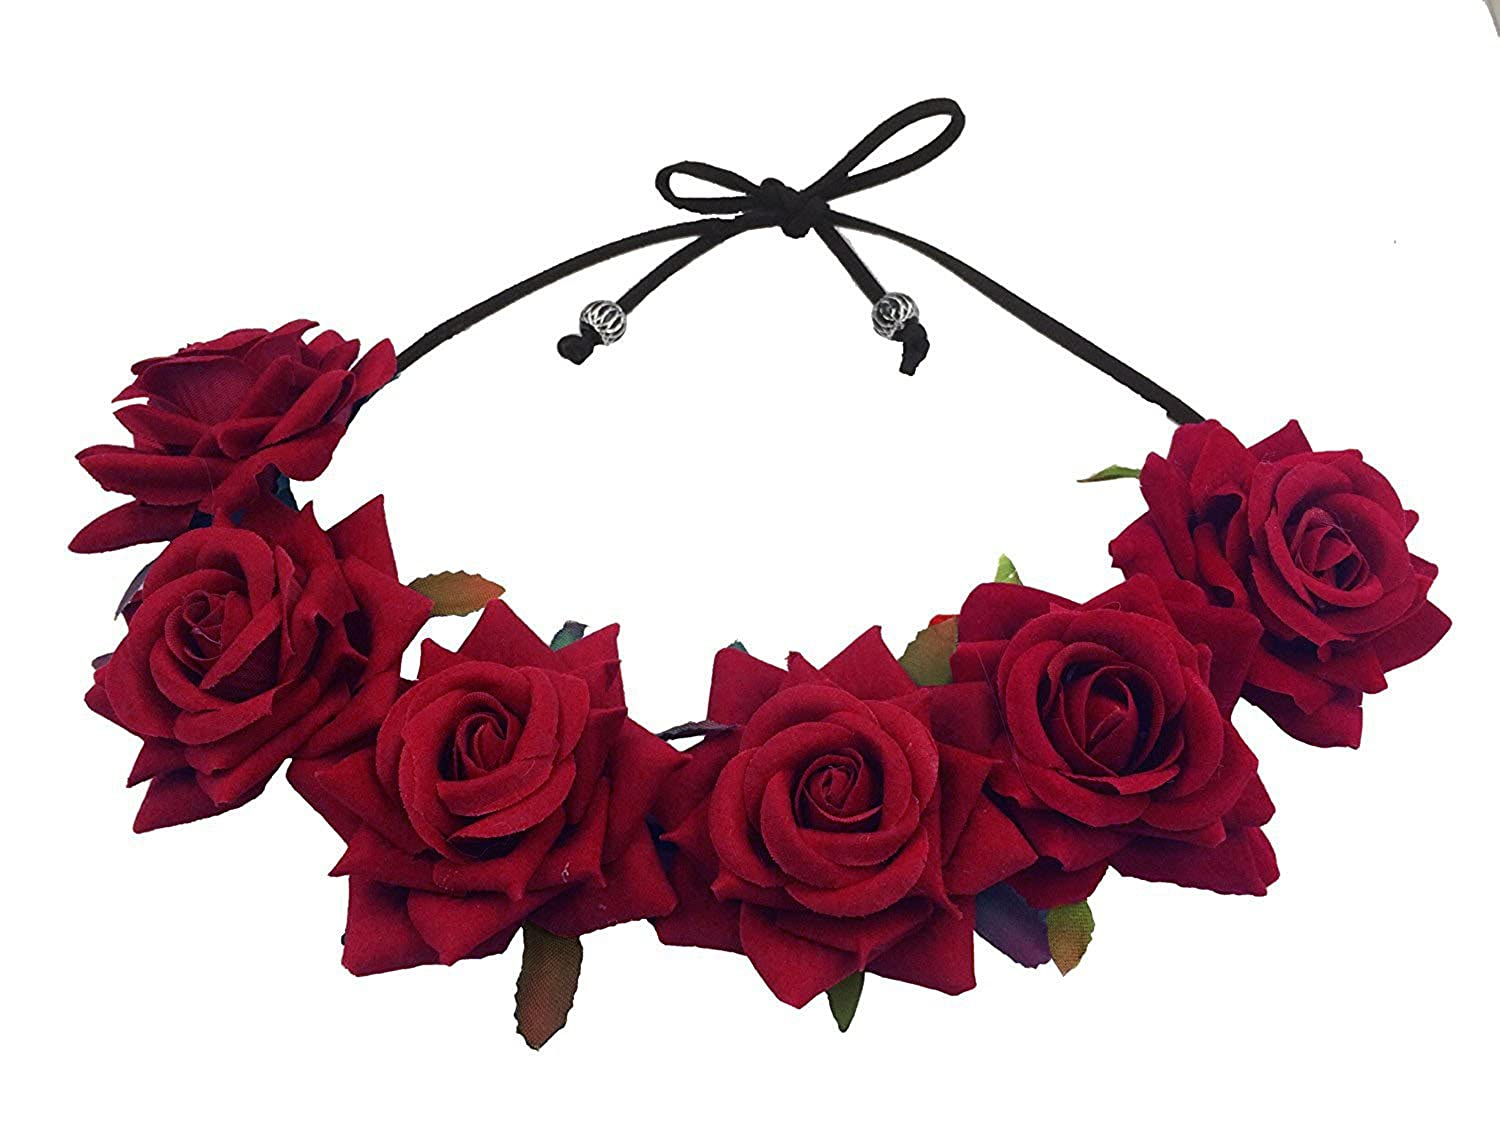 Floral fall rose red rose flower crown woodland hair wreath festival floral fall rose red rose flower crown woodland hair wreath festival headband f 67 izmirmasajfo